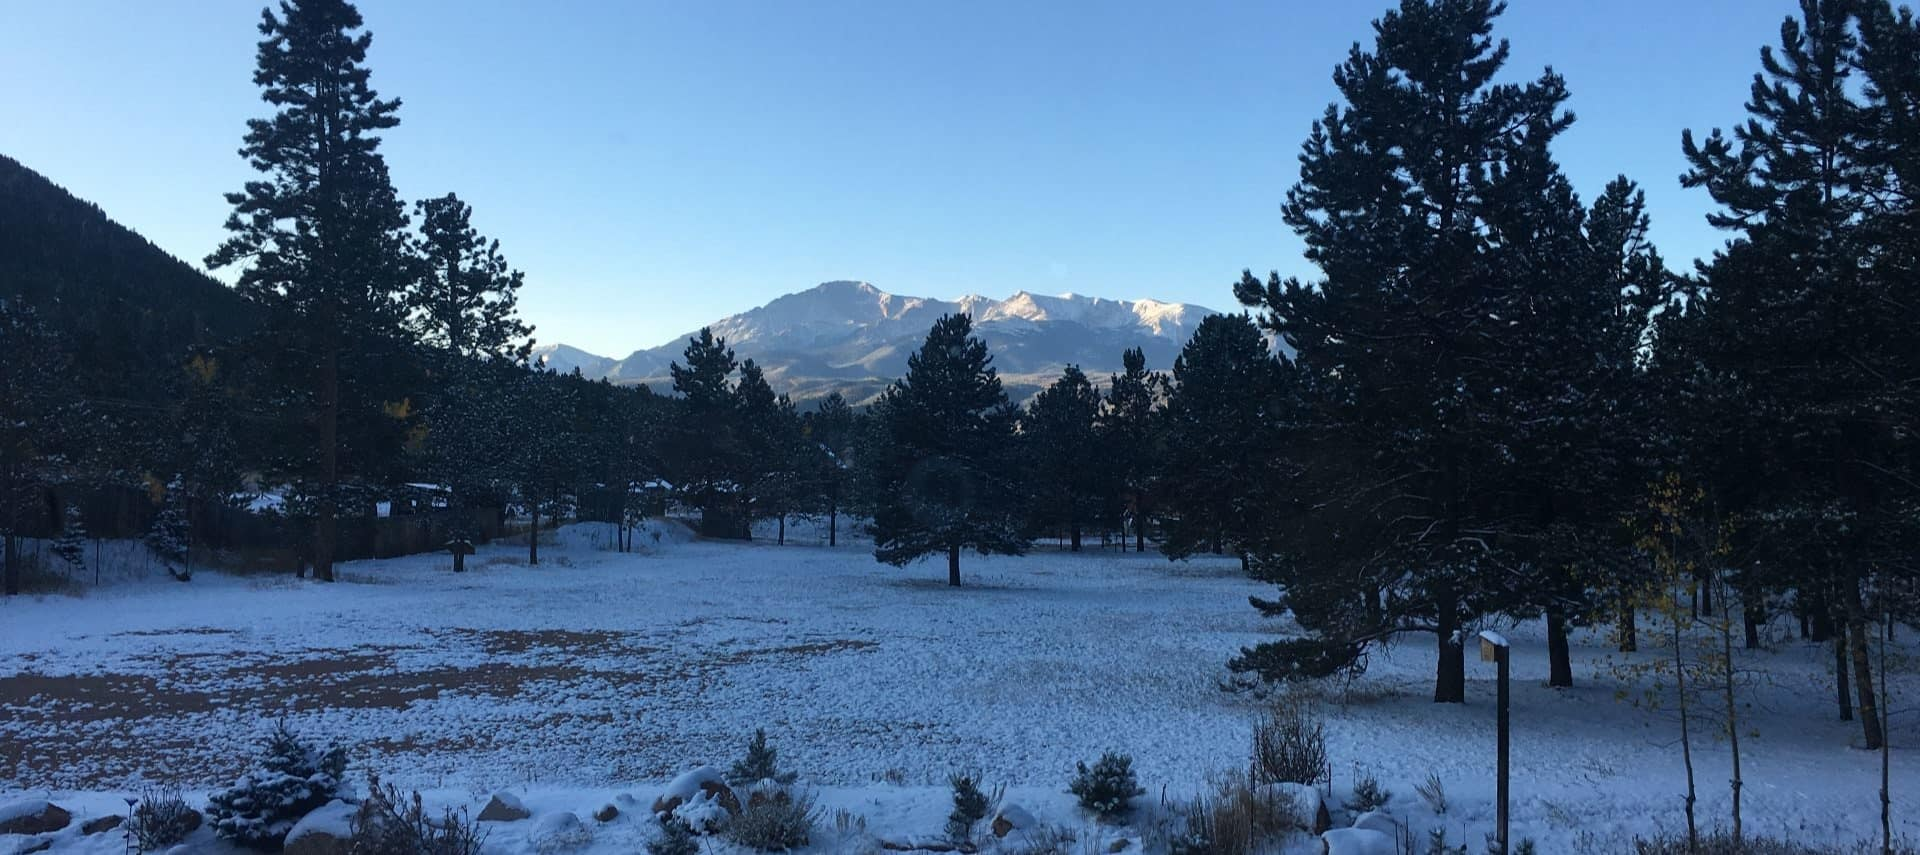 Multiple pine trees with snow on the ground and mountain range in background at sunrise